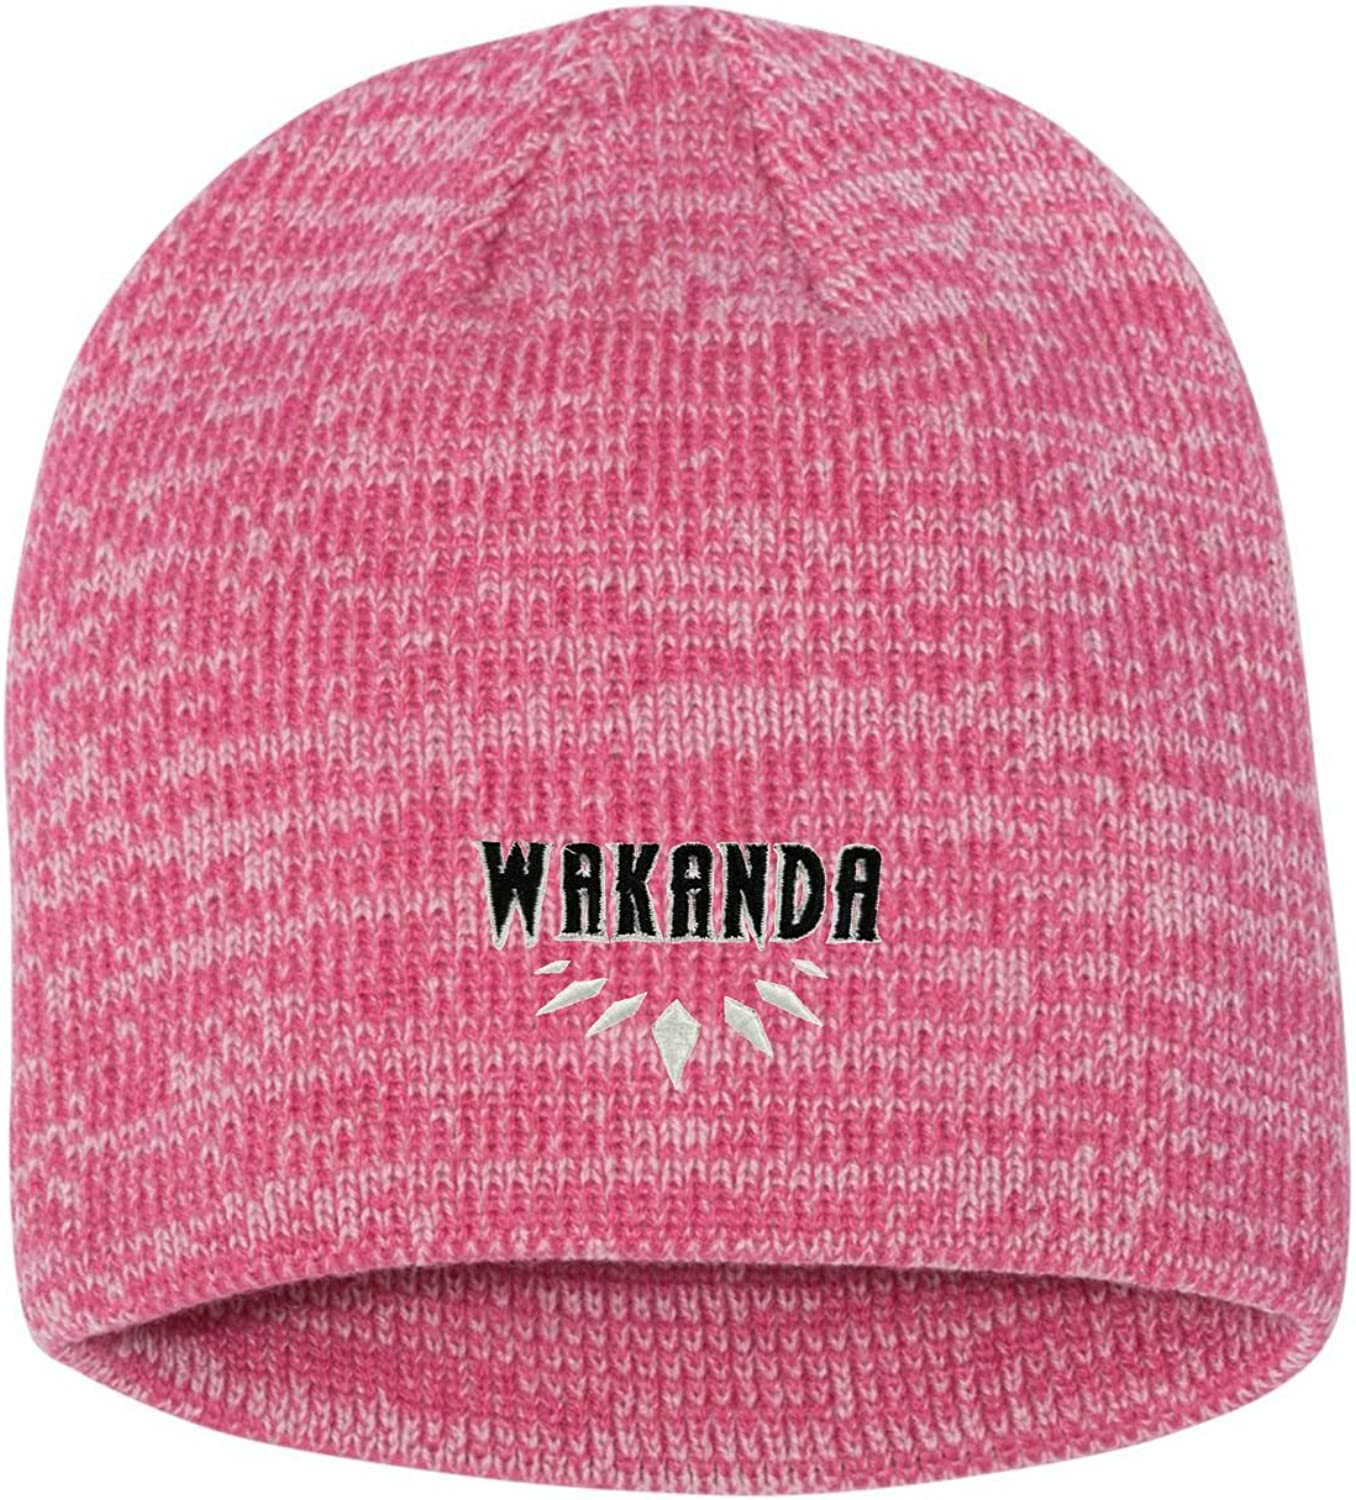 Go All Out Adult Wakanda Embroidered Marled Knit Beanie Cap